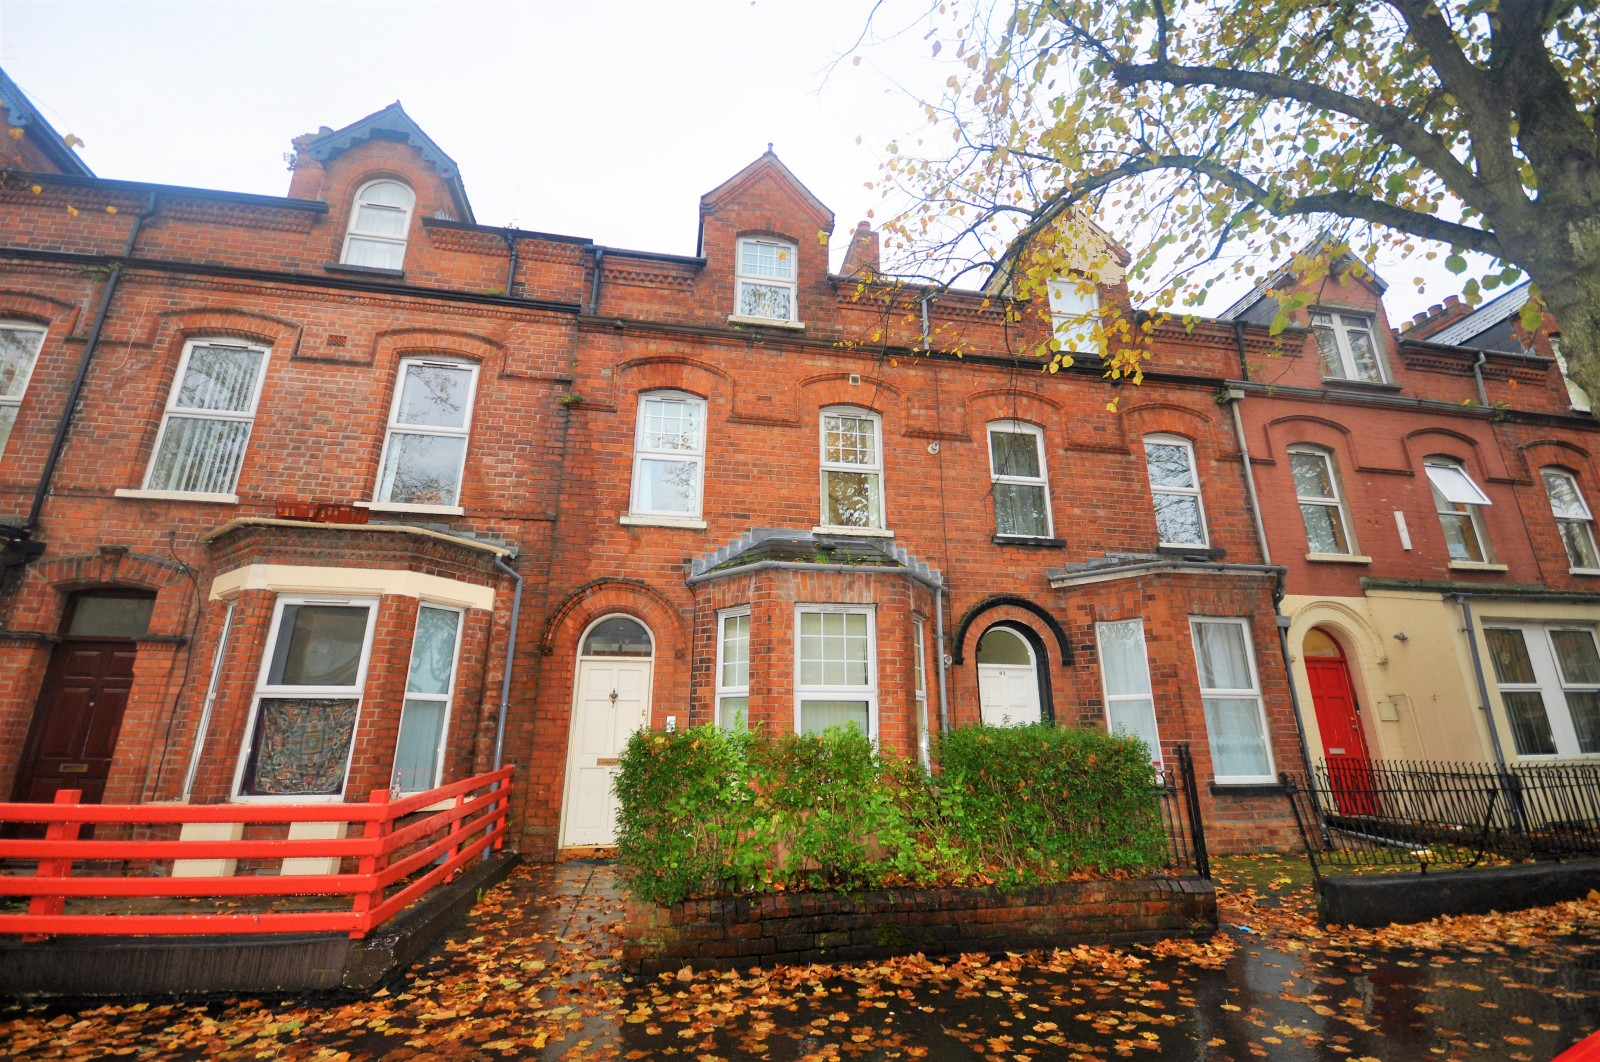 Flat 1, 83 University Avenue, Holylands, Belfast, BT7 1GX